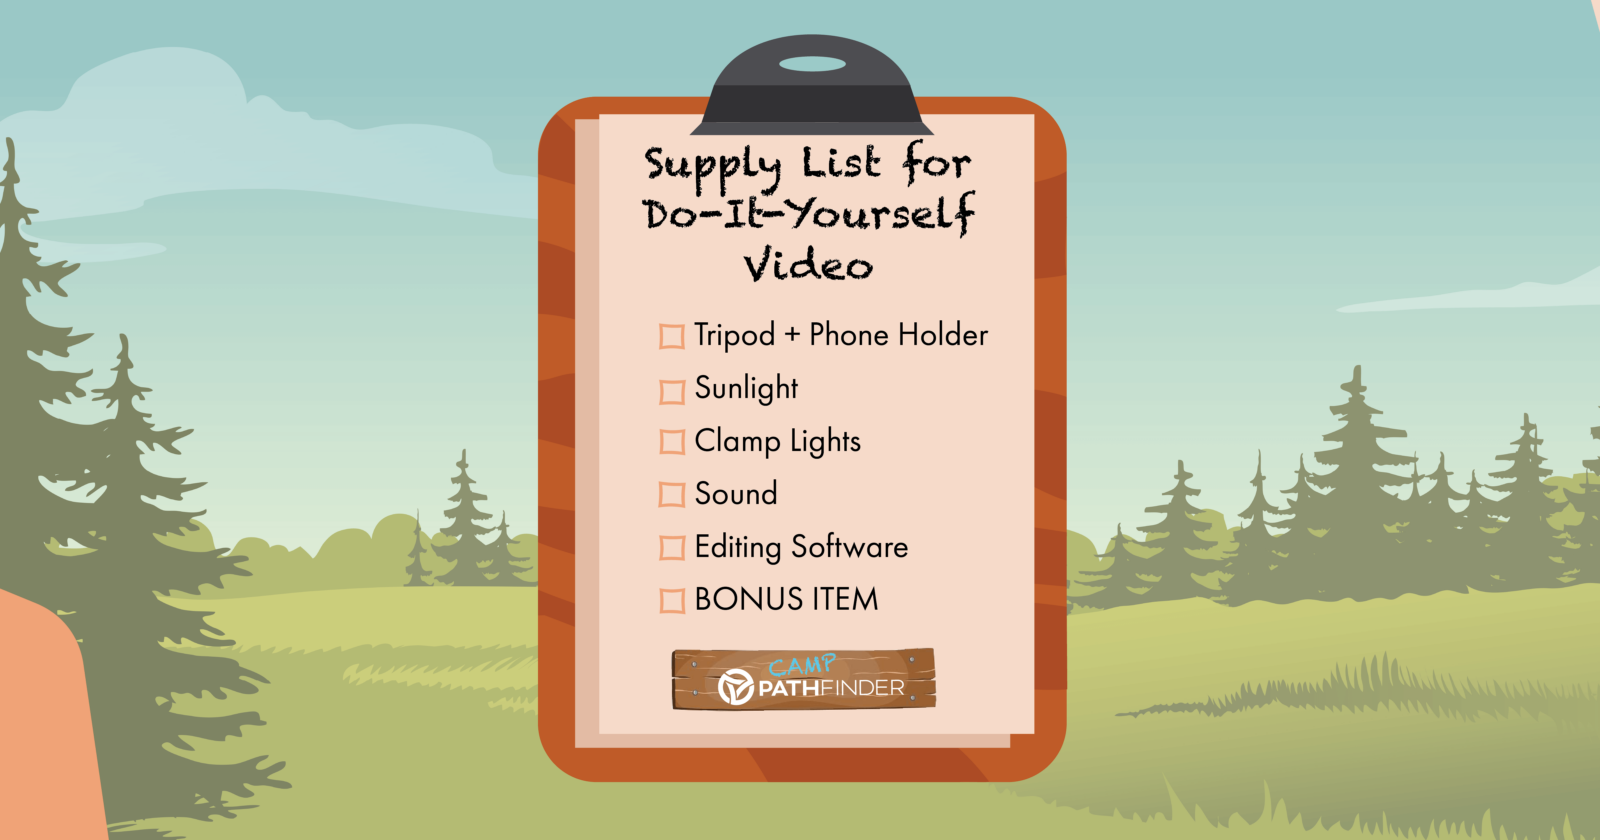 Supply List for Do-It-Yourself Video